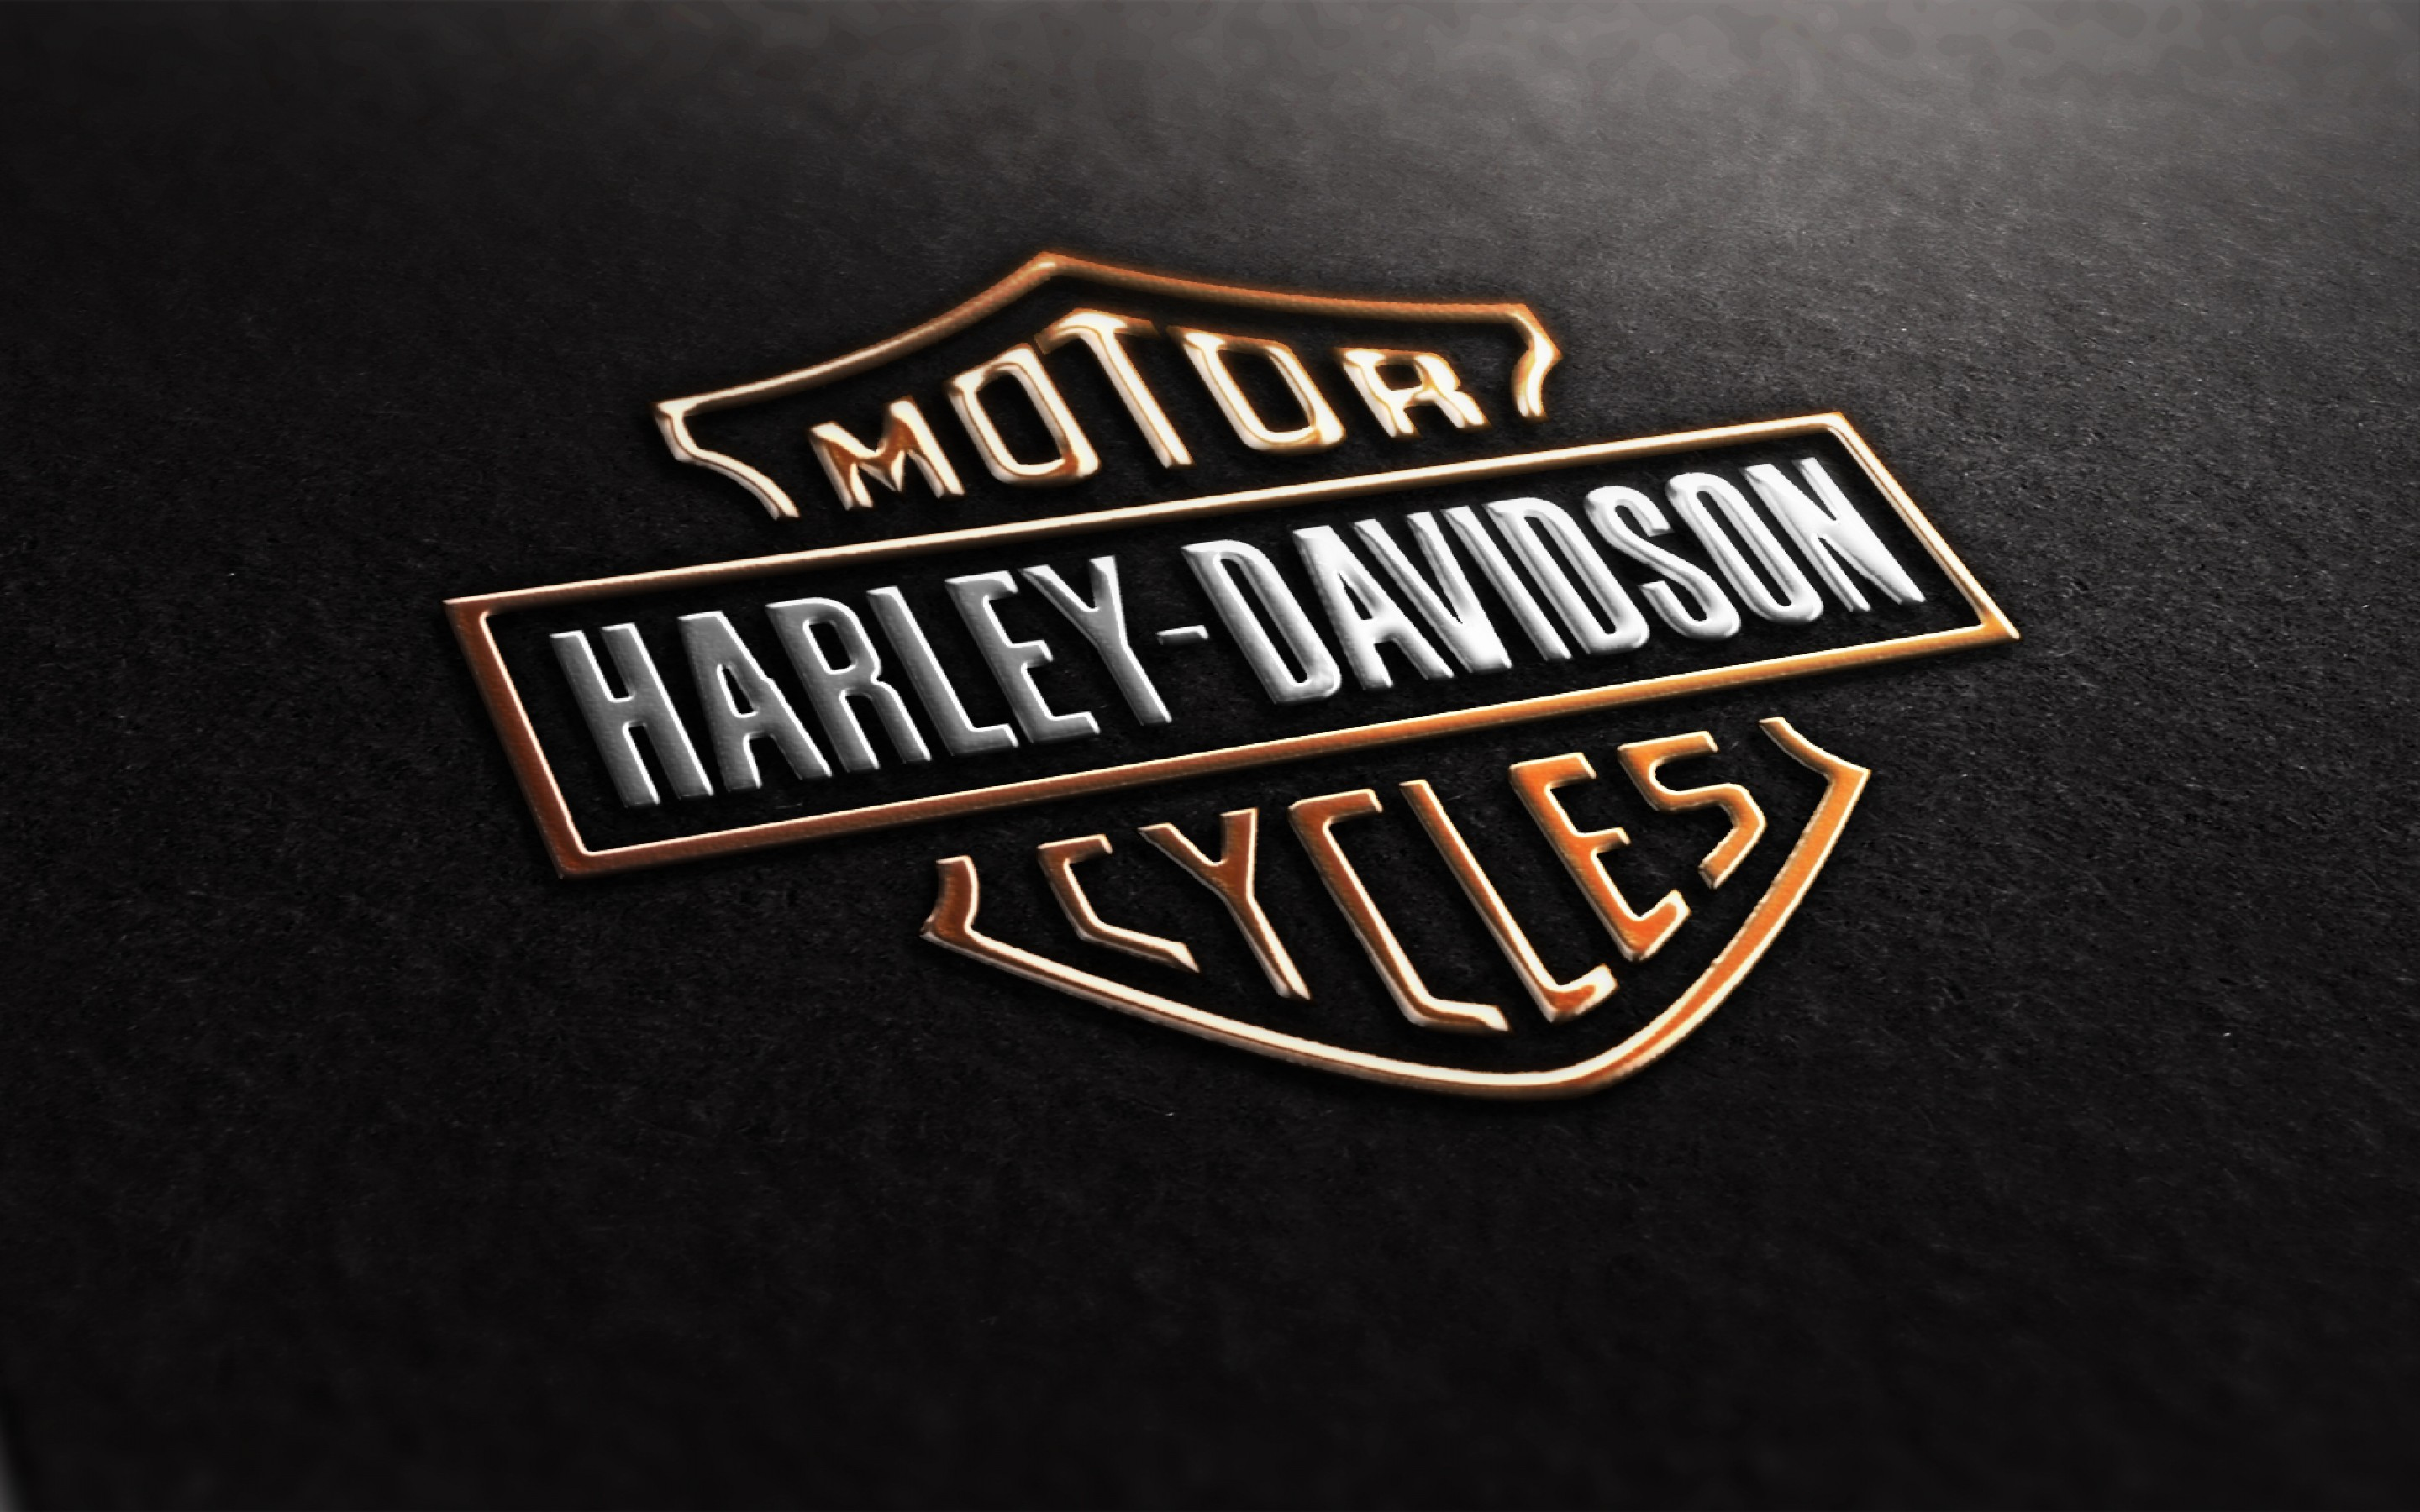 Harley Davidson Logo Motorcycle Wallpaper Wide 10715 2880x1800